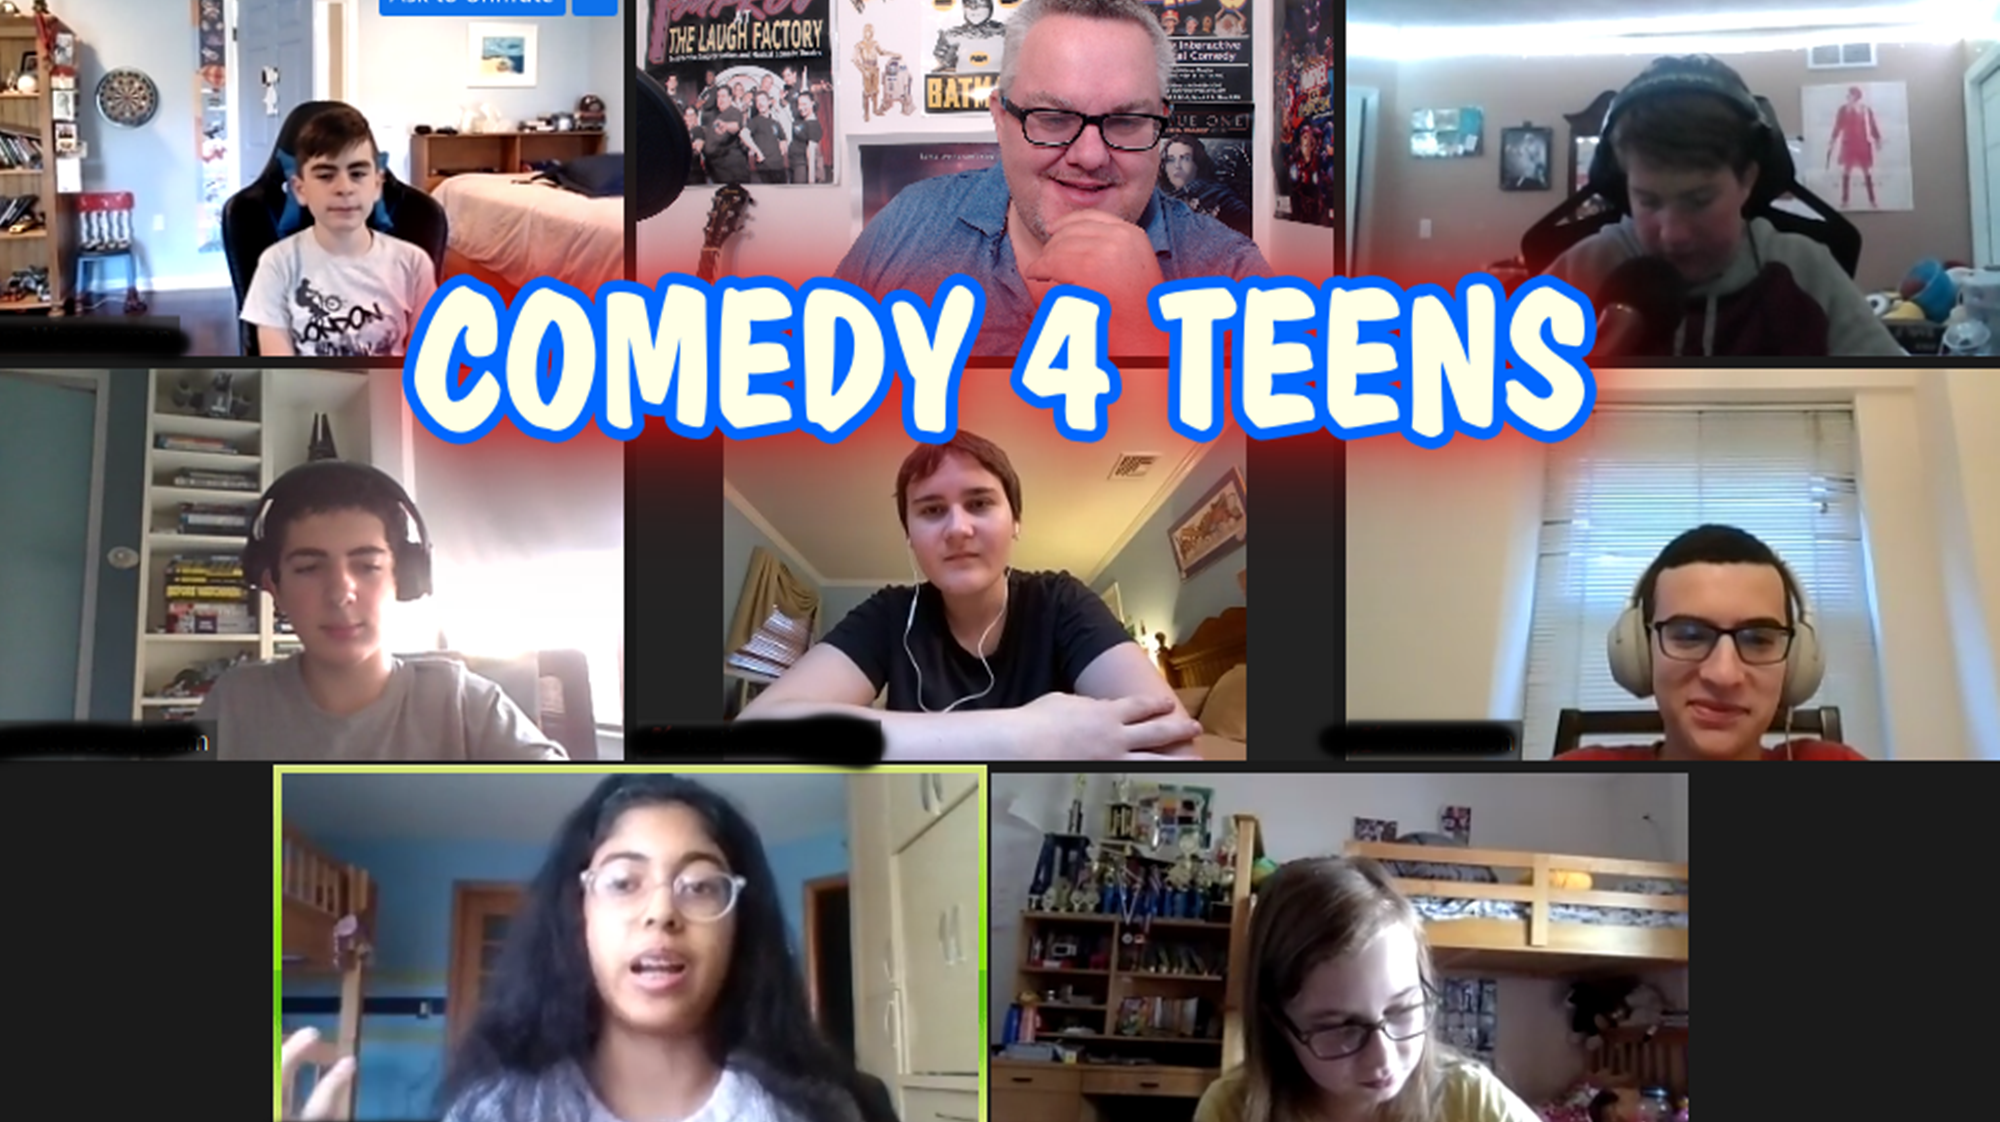 After School Improv 4 Teens - Online